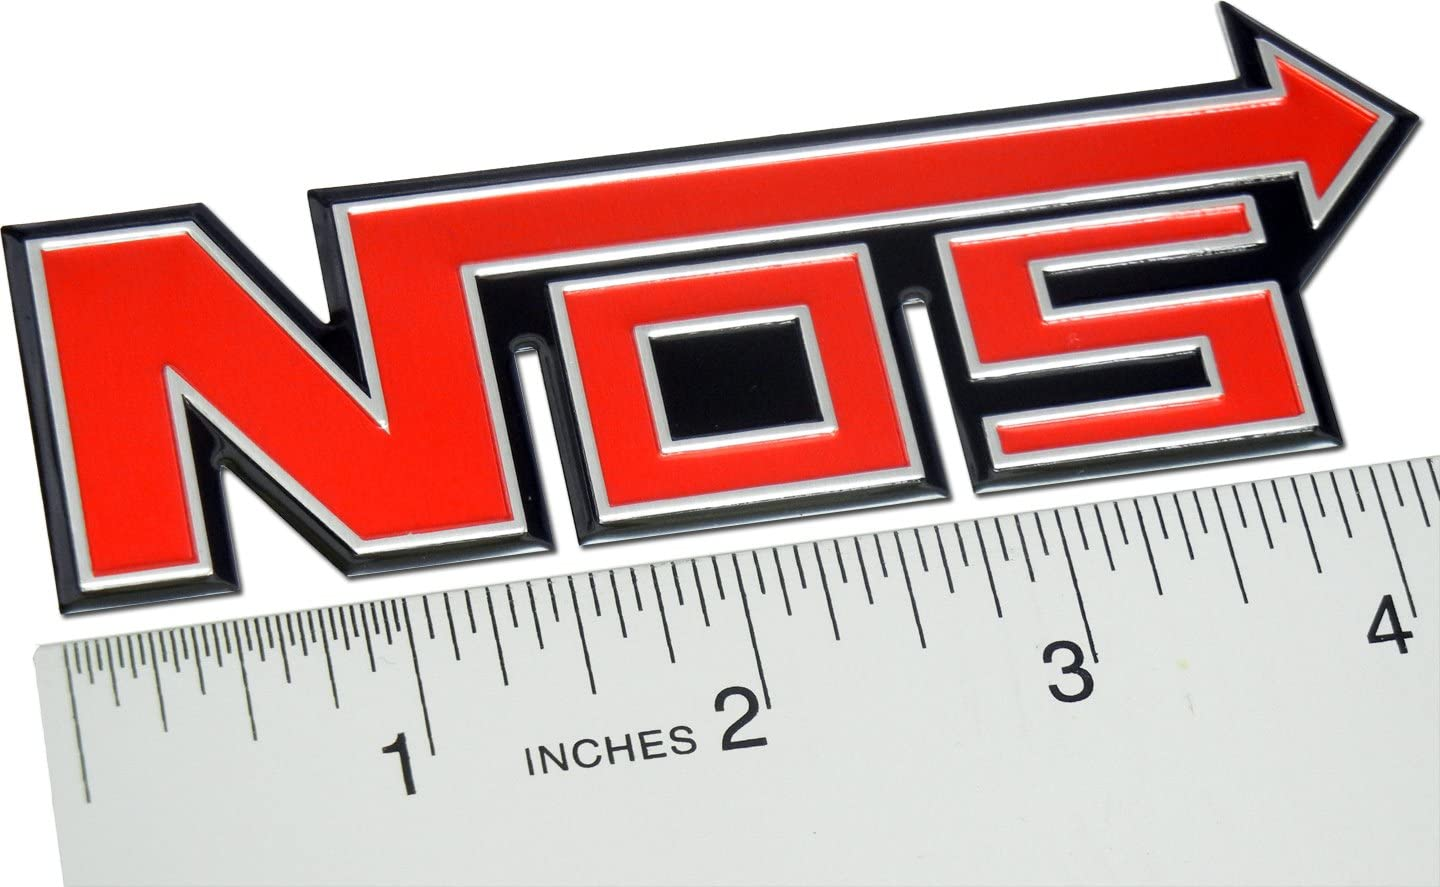 NOS Decal Sticker Nitrous Oxide Label Graphic Set Vinyl Adhesive 8 Pcs White